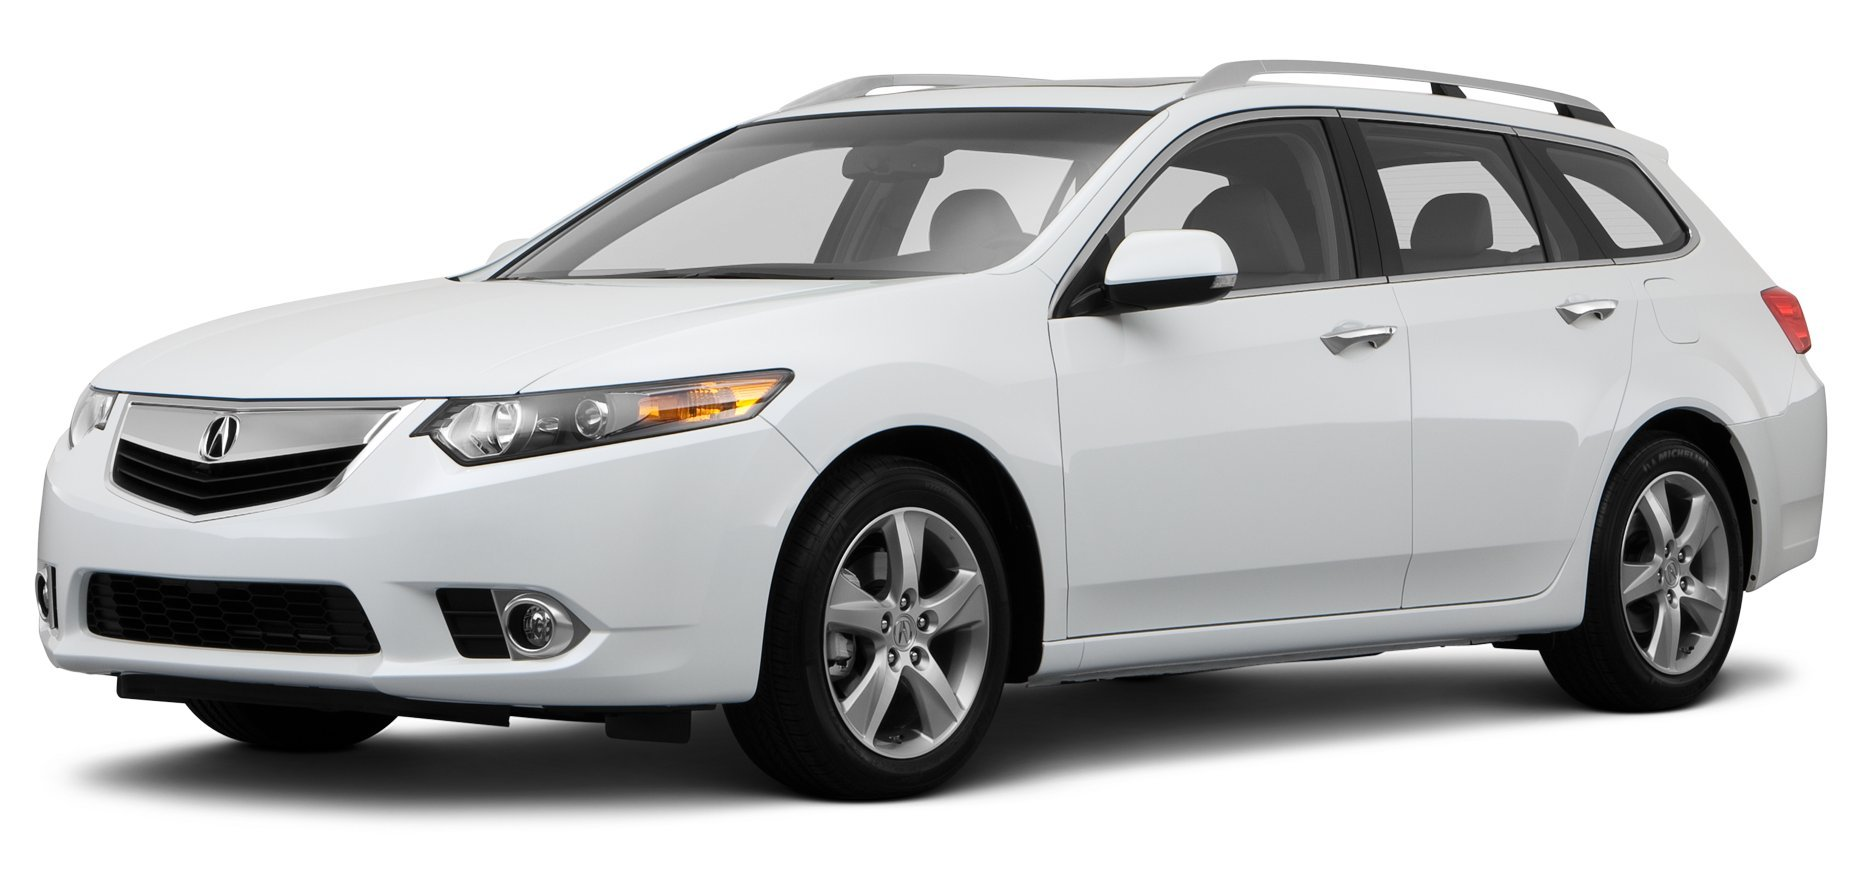 news special model auto for se tsx acura pricing range announced edition